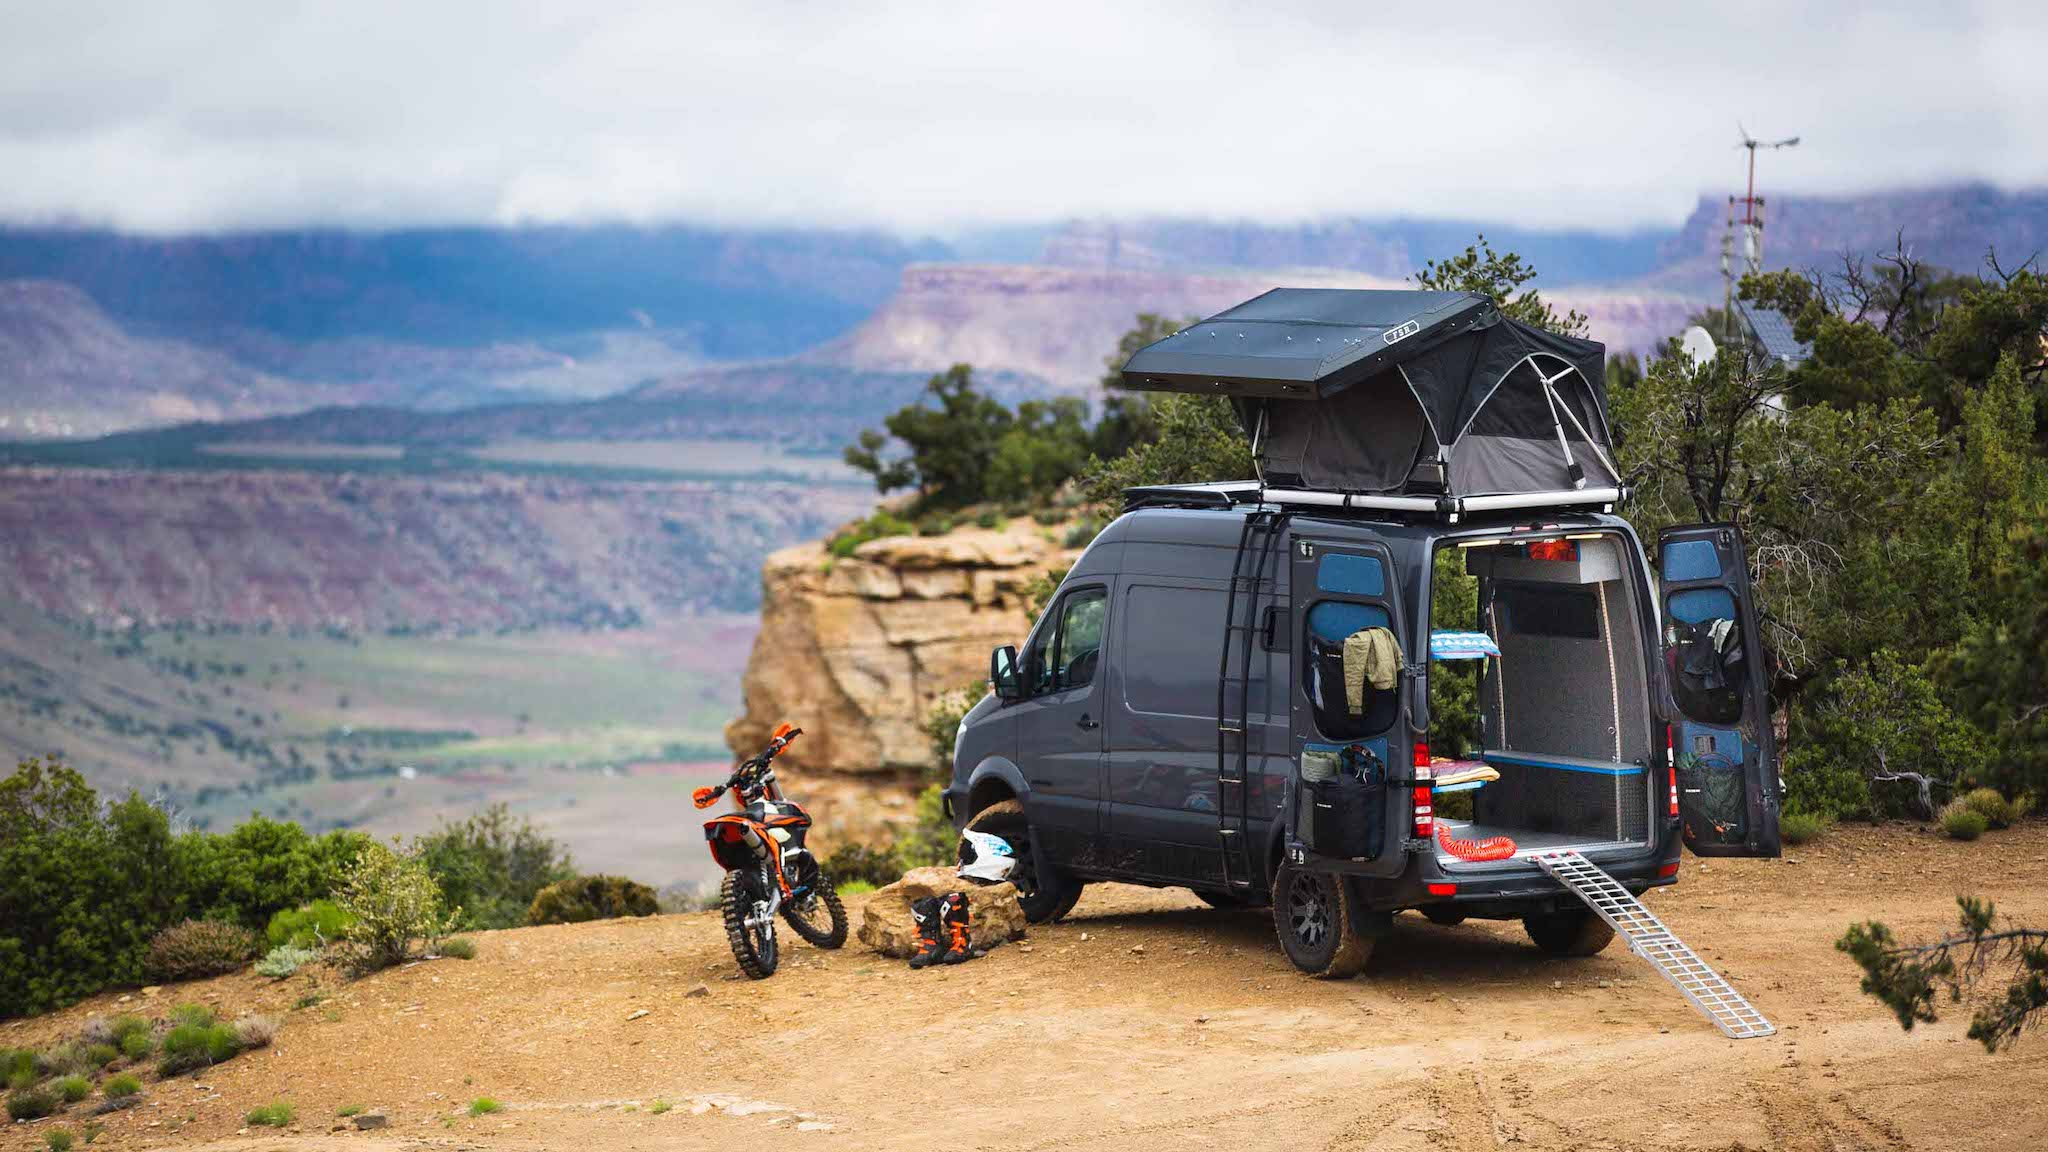 10 Cool Camper Van Conversions You Can (Probably) Afford